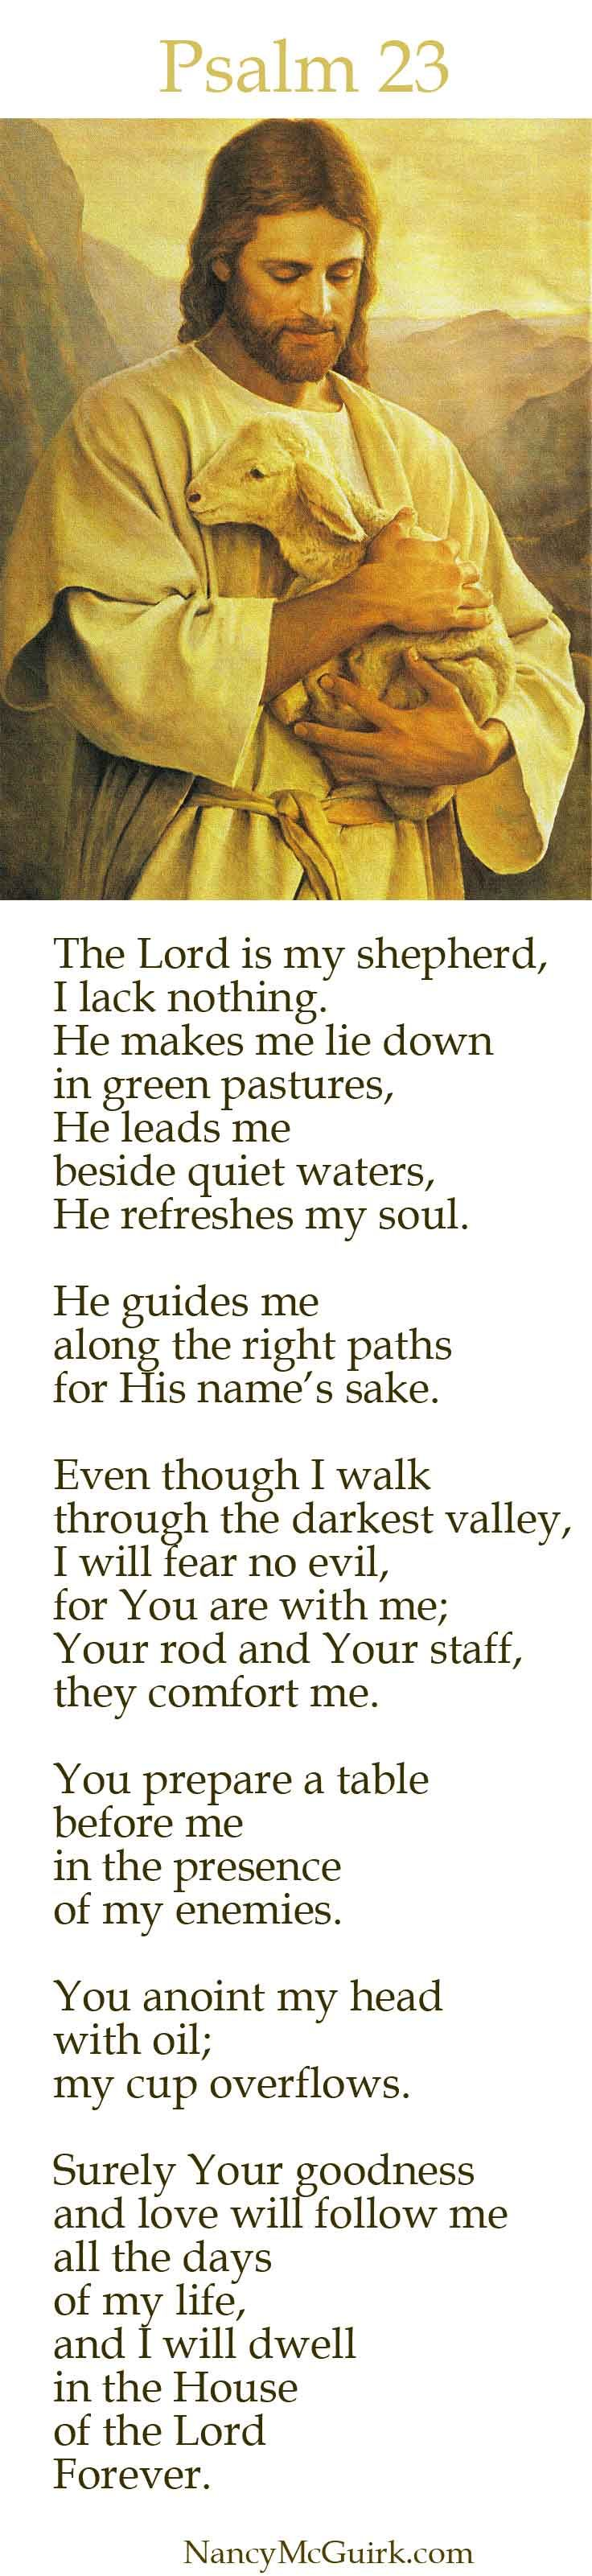 "Bible verse Psalm 23 ""The Lord is my shepherd, I lack nothing. He makes me lie down in green pastures, He leads me  beside quiet waters, He refreshes my soul. NancyMcGuirk.com"